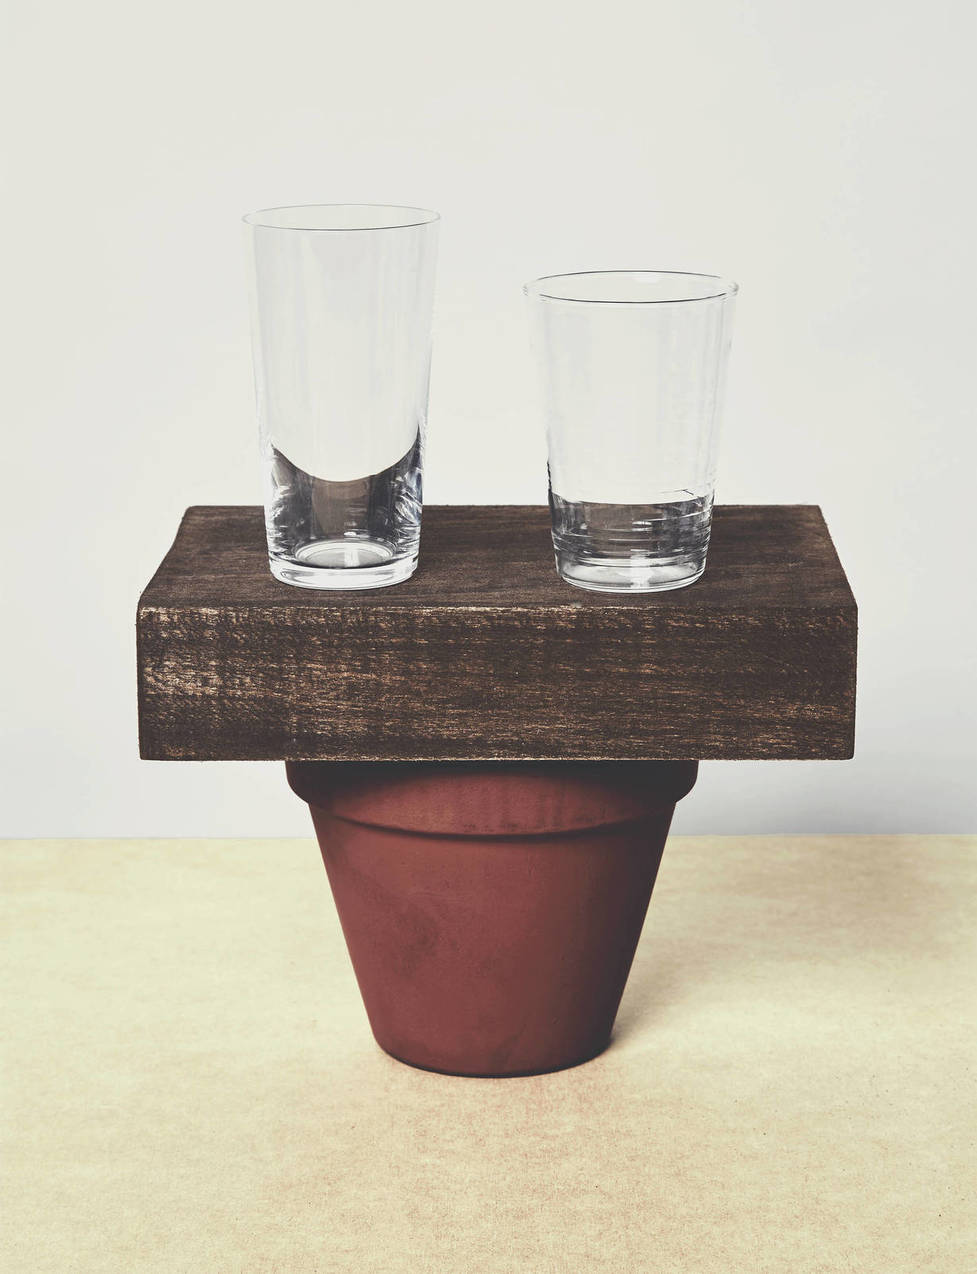 """There is an almost   emphatic sense   of   reason and rationality   to the object arrangement,"" notes Koren of the meeting of two glasses, a wooden block, and a flower pot. The pictorial intensity is enough to sustain interest, he concludes, until ""you run up against the conceptual dead-end"" of the plain, non-descript nature of the objects themselves. Pictured:   Serax Beaker Drinking Glass  ,   Collected by The Line 5.3 oz Glass"